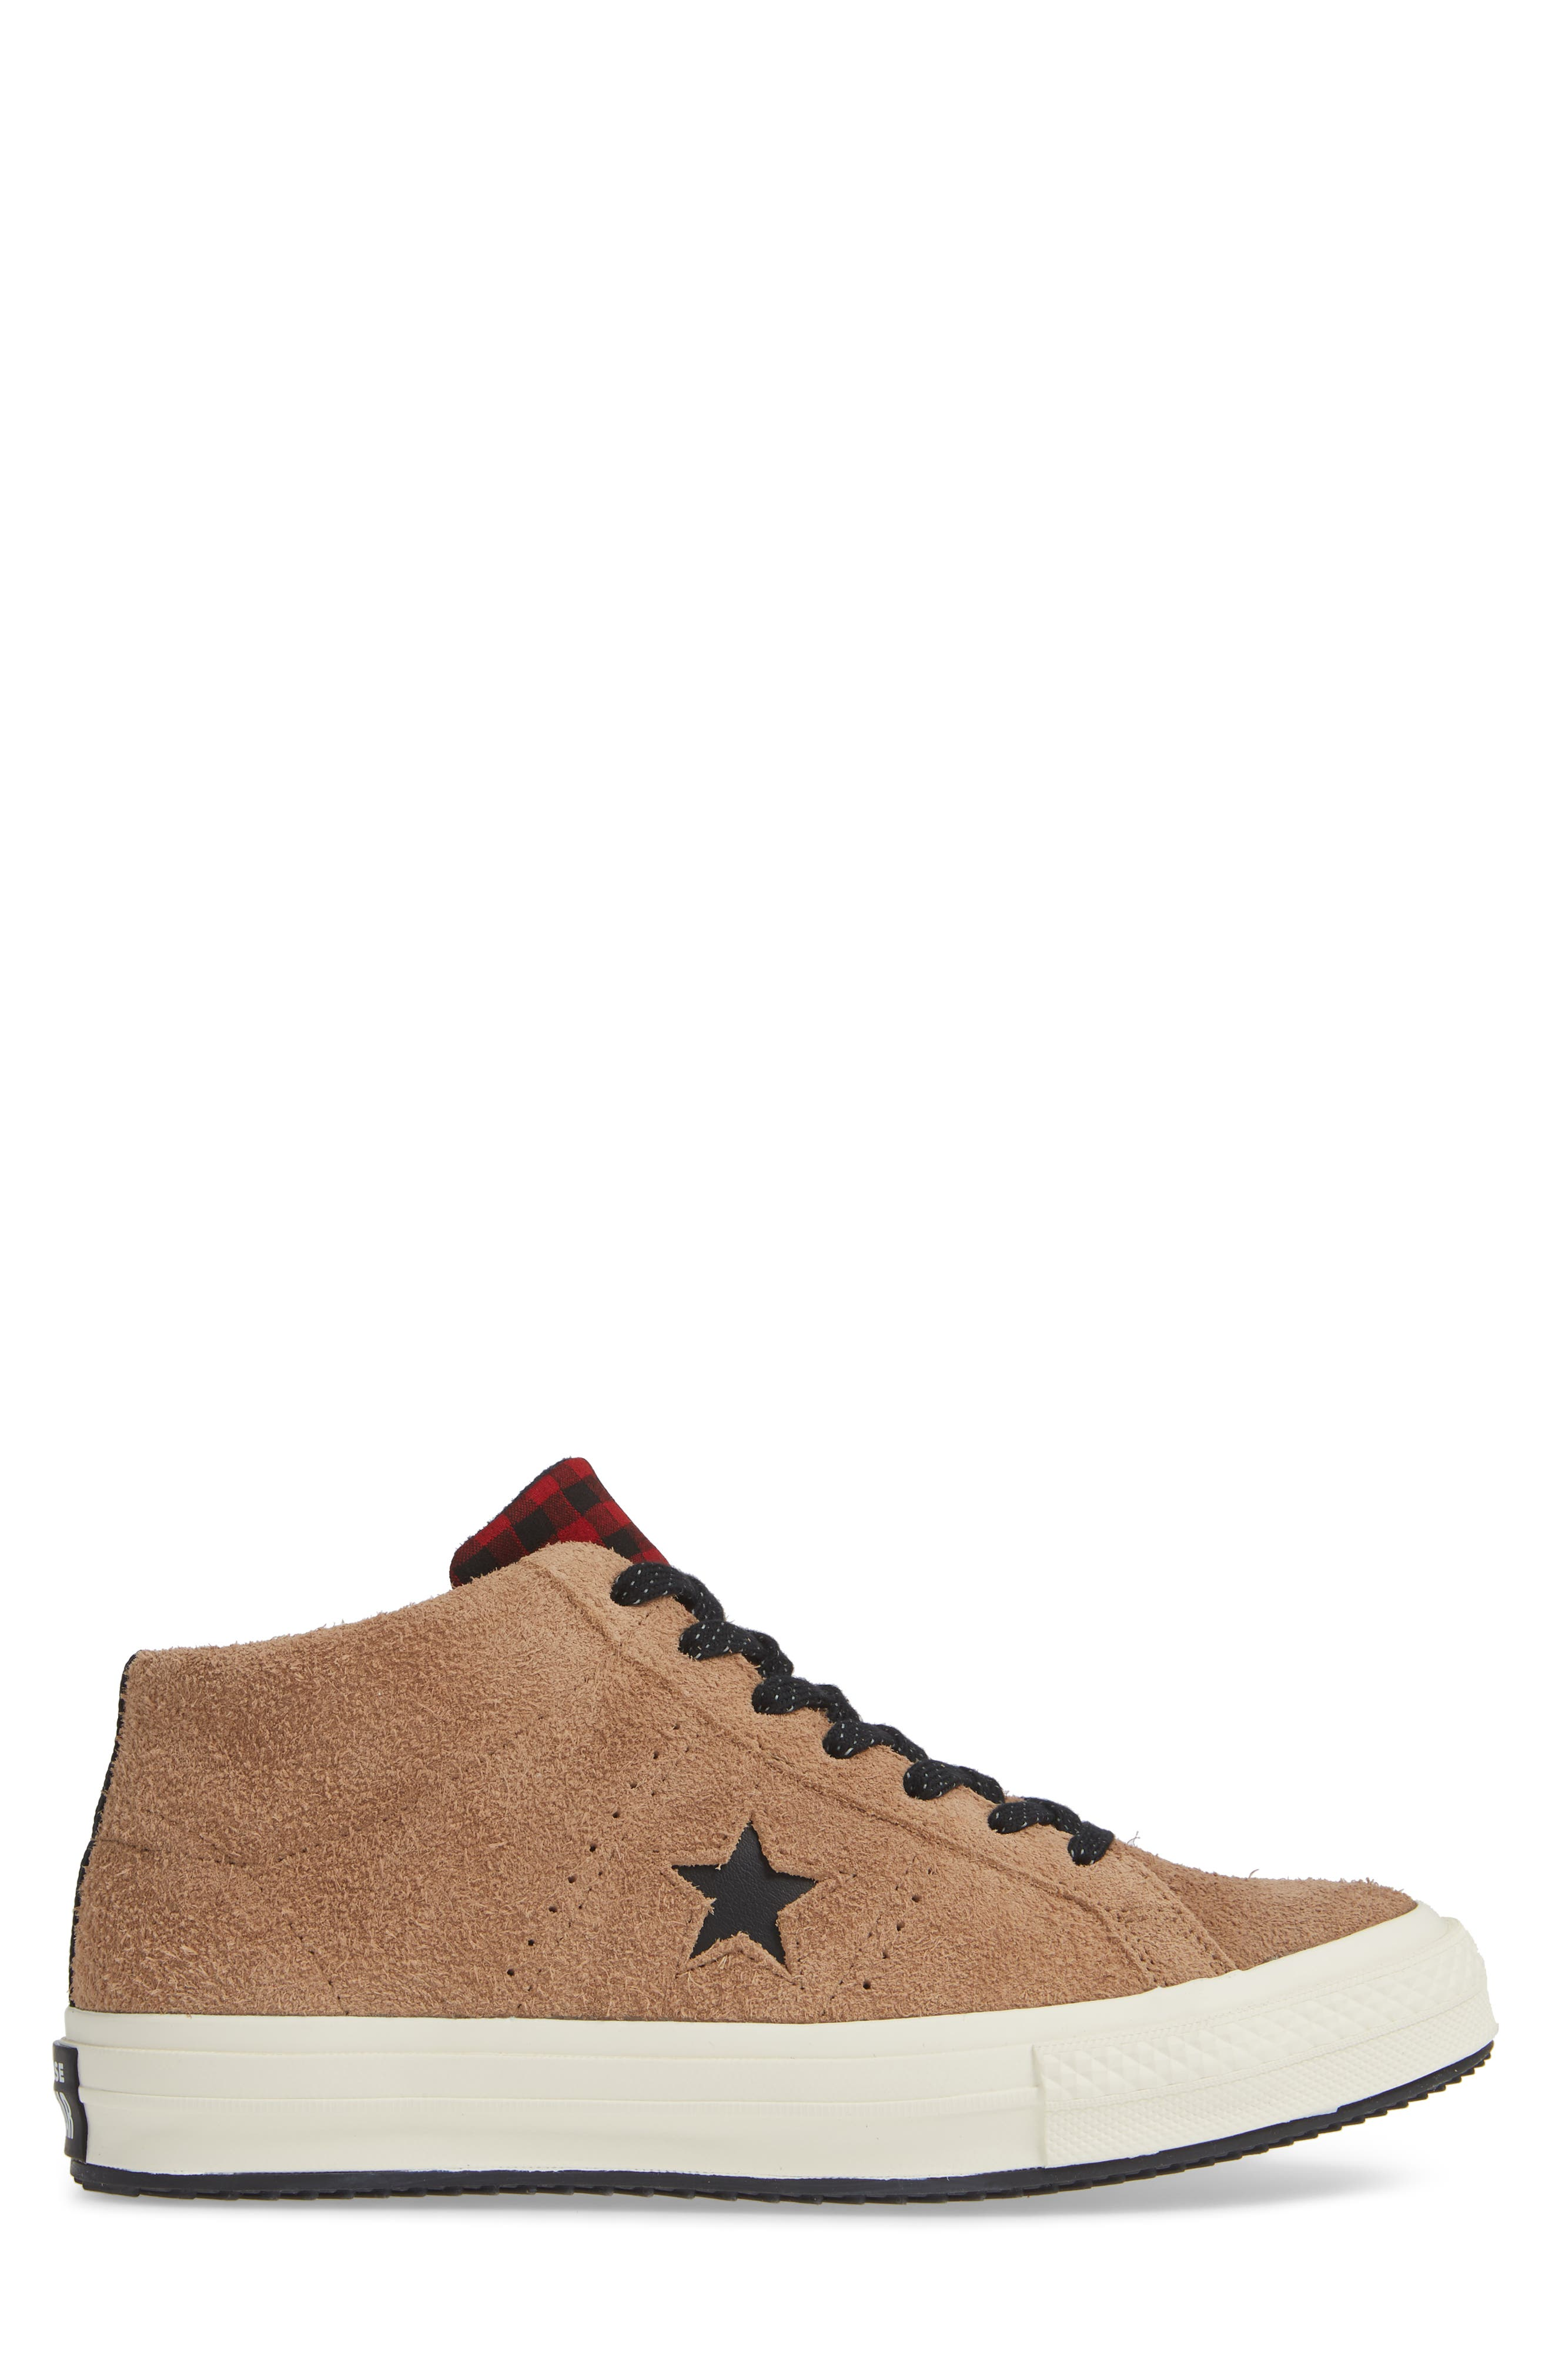 One Star Climate Counter Mid Top Sneaker,                             Alternate thumbnail 3, color,                             FIELD SURPLUS SUEDE